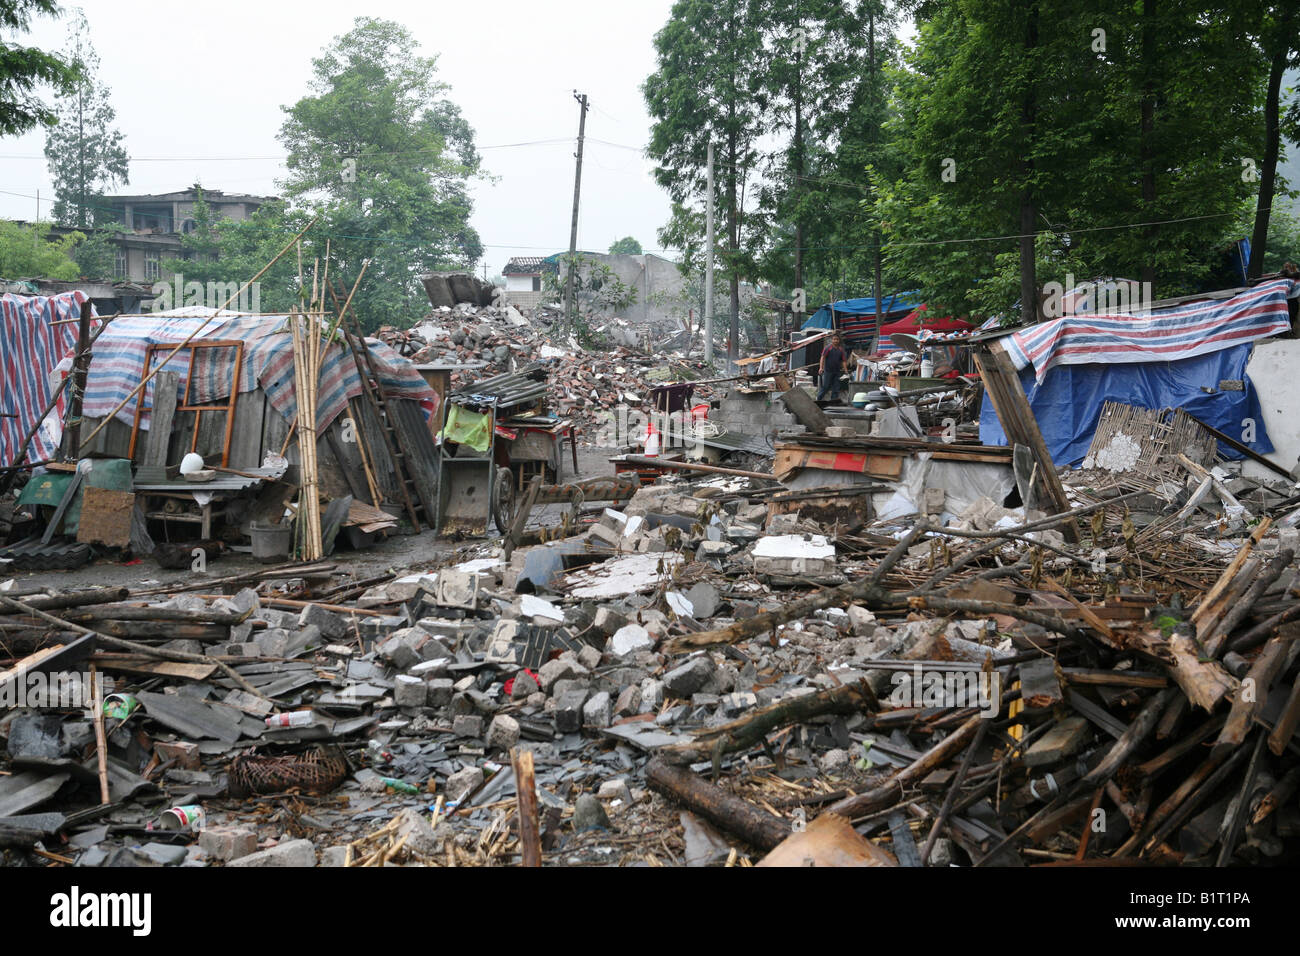 Devastated houses lie in ruins in Pengzhou, following the Sichuan Earthquake of 12th May 2008, China - Stock Image